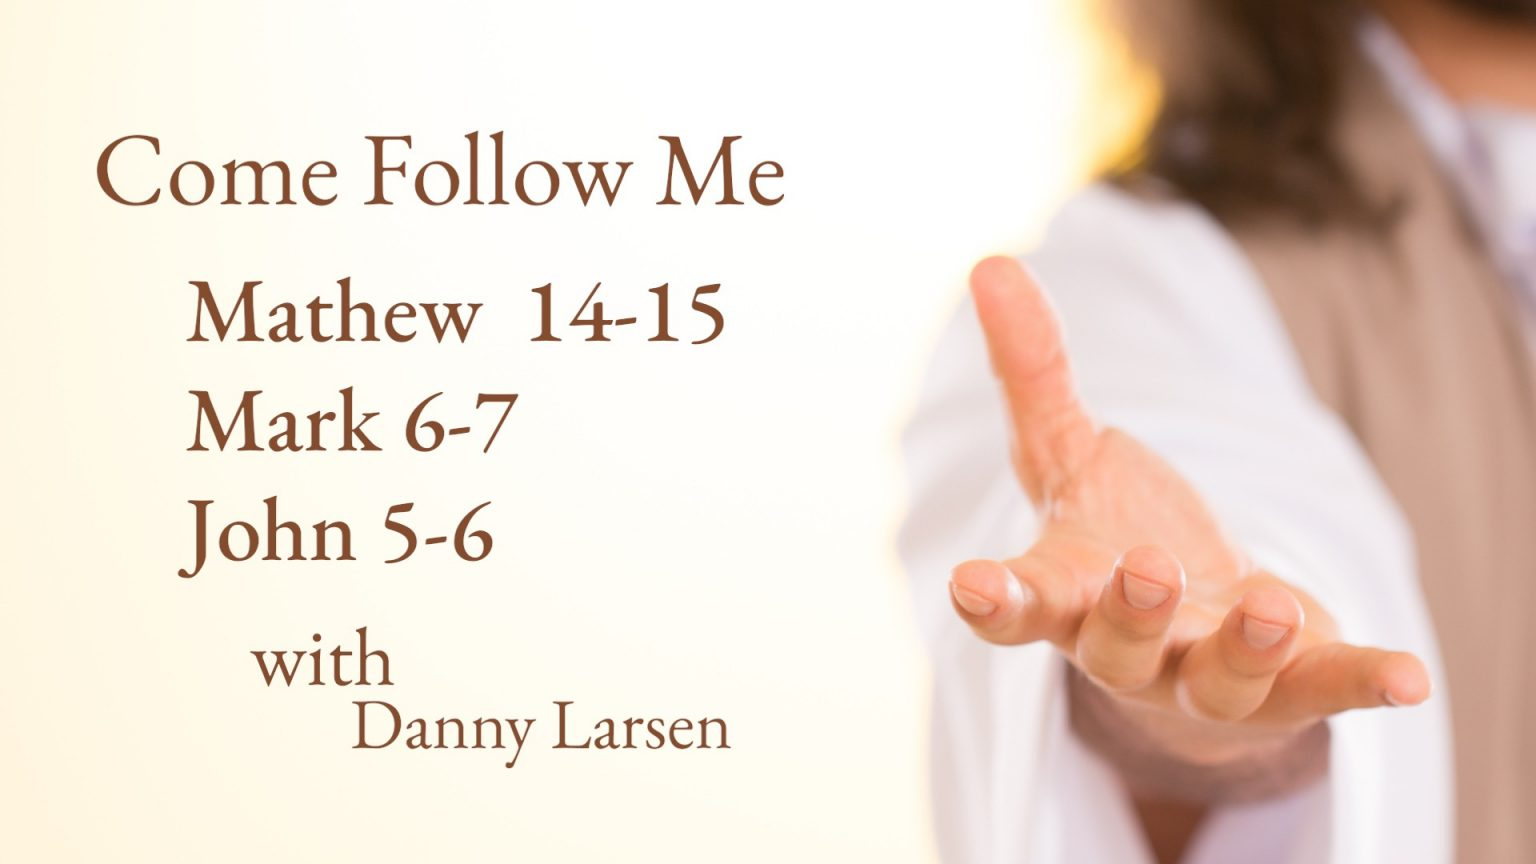 Mathew 14-15; Mark 6-7; John 5-6 – Come Follow Me